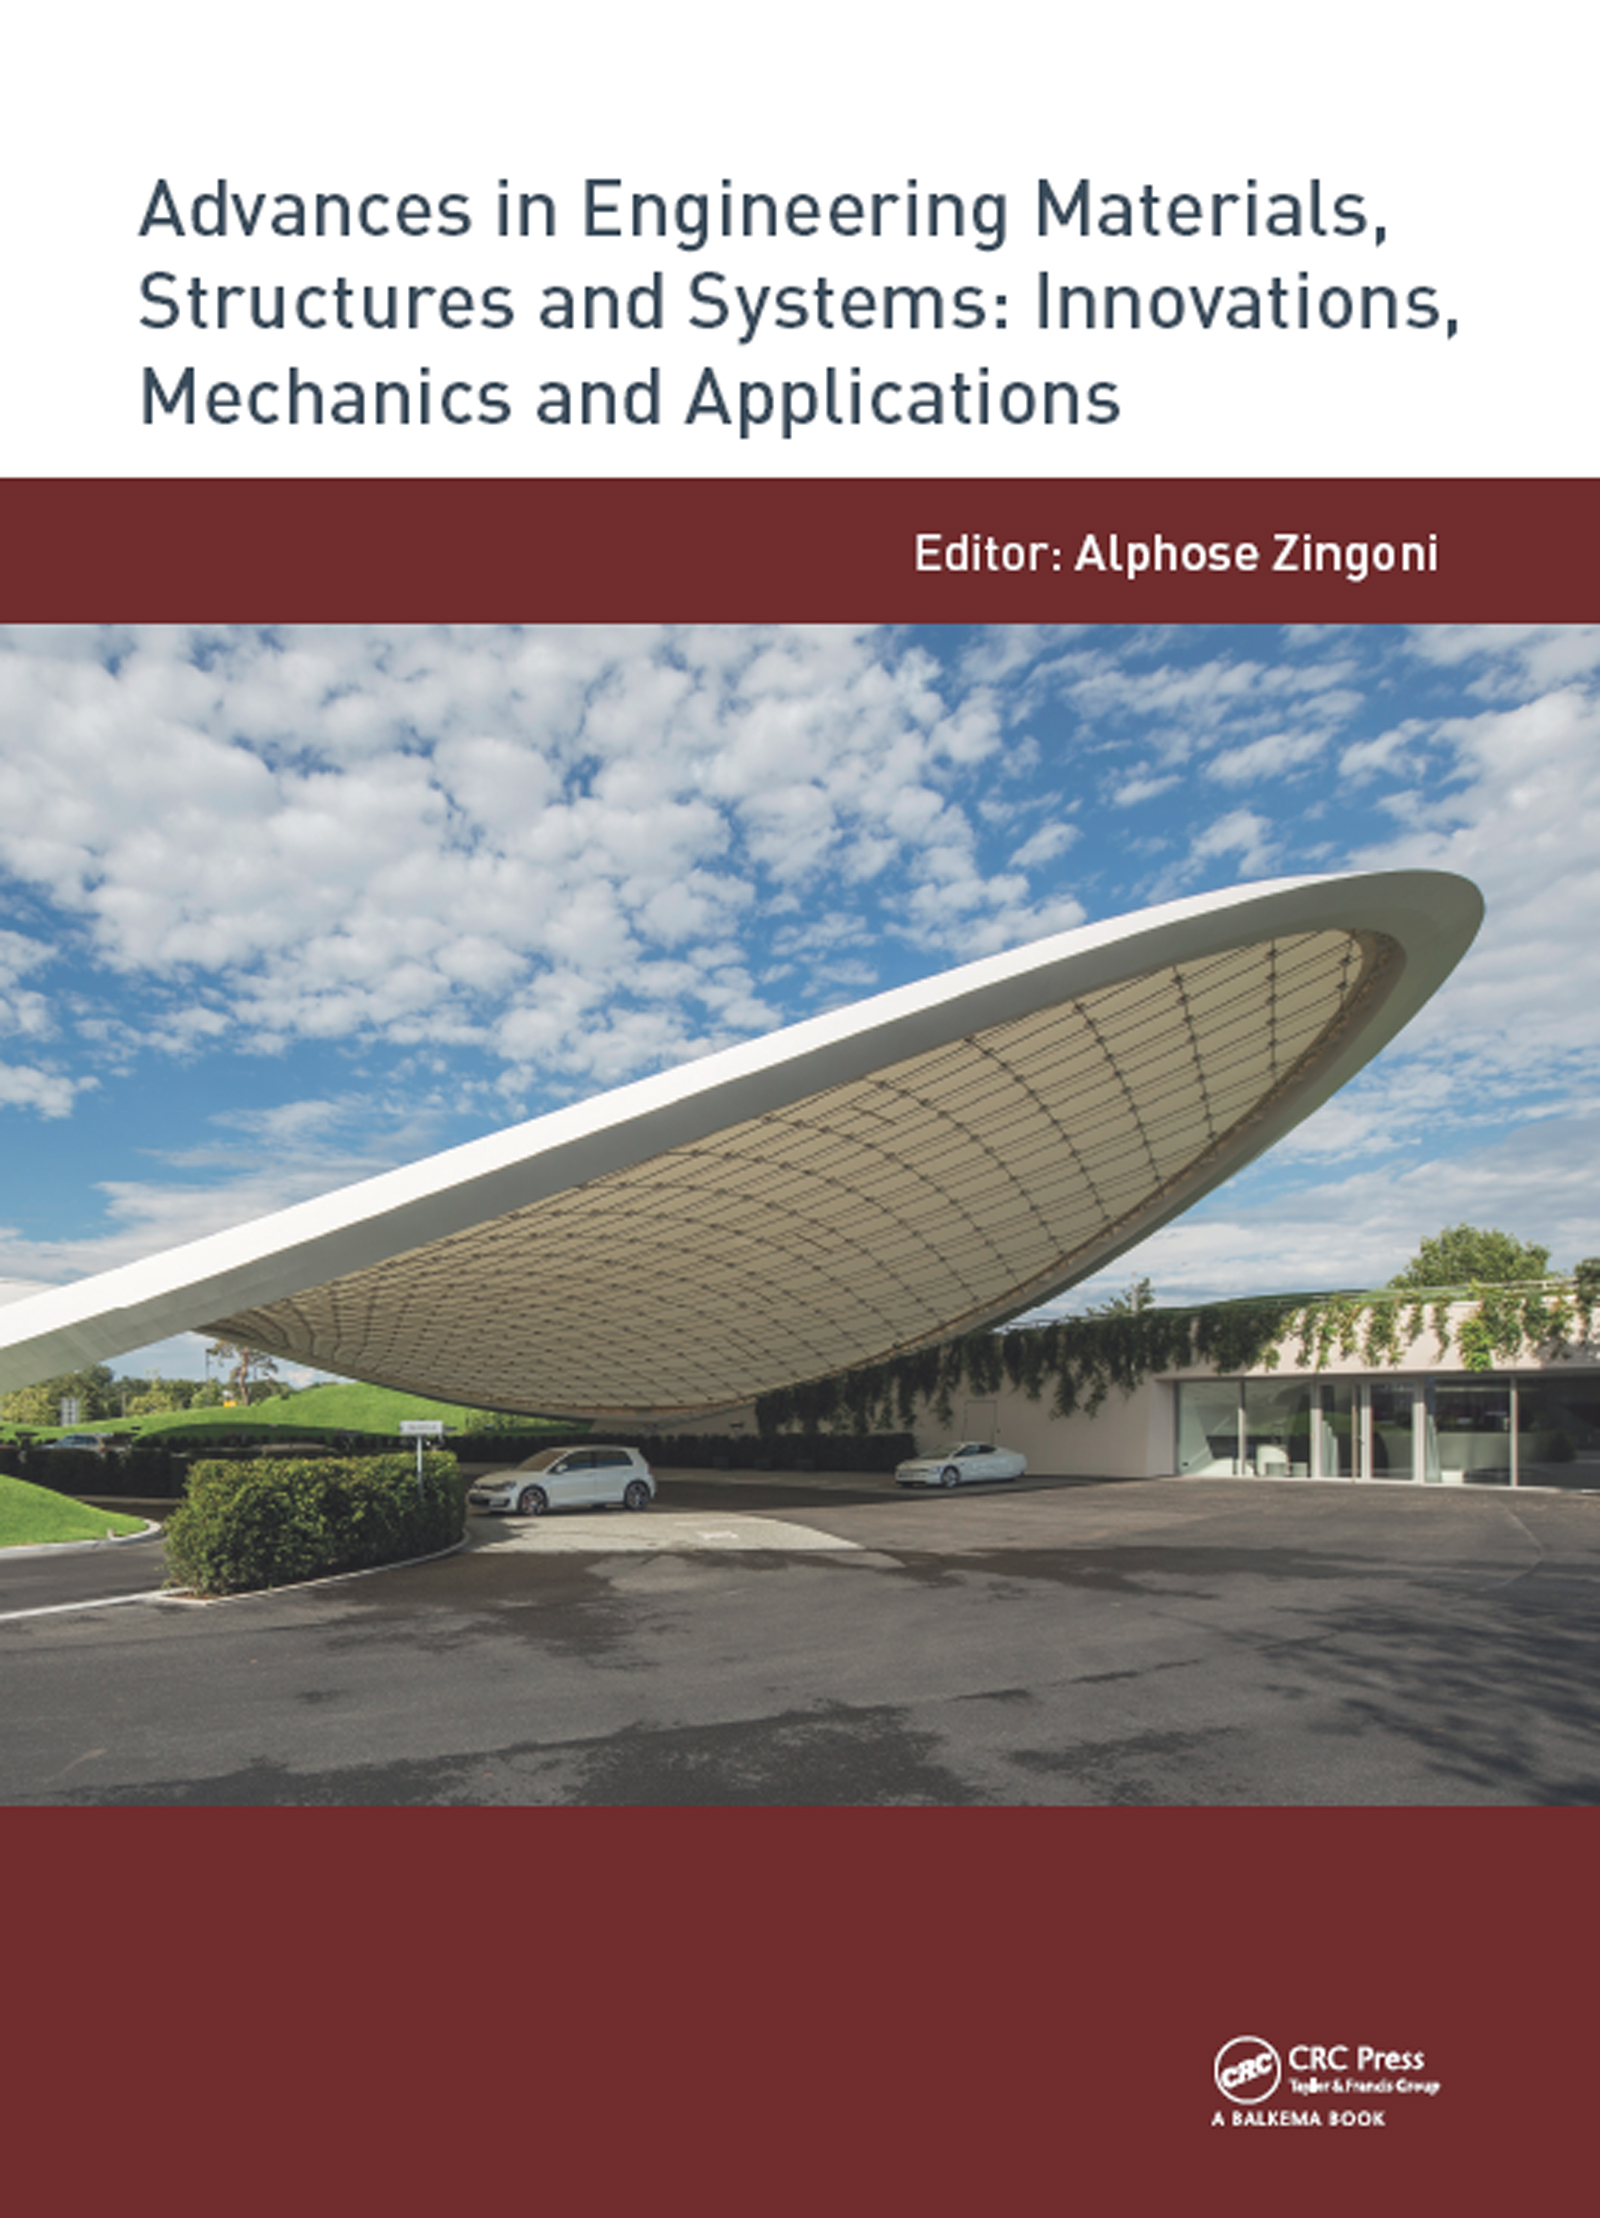 Advances in Engineering Materials, Structures and Systems: Innovations, Mechanics and Applications: Proceedings of the 7th International Conference on Structural Engineering, Mechanics and Computation (SEMC 2019), September 2-4, 2019, Cape Town, South Africa, 1st Edition (Pack - Book and Ebook) book cover